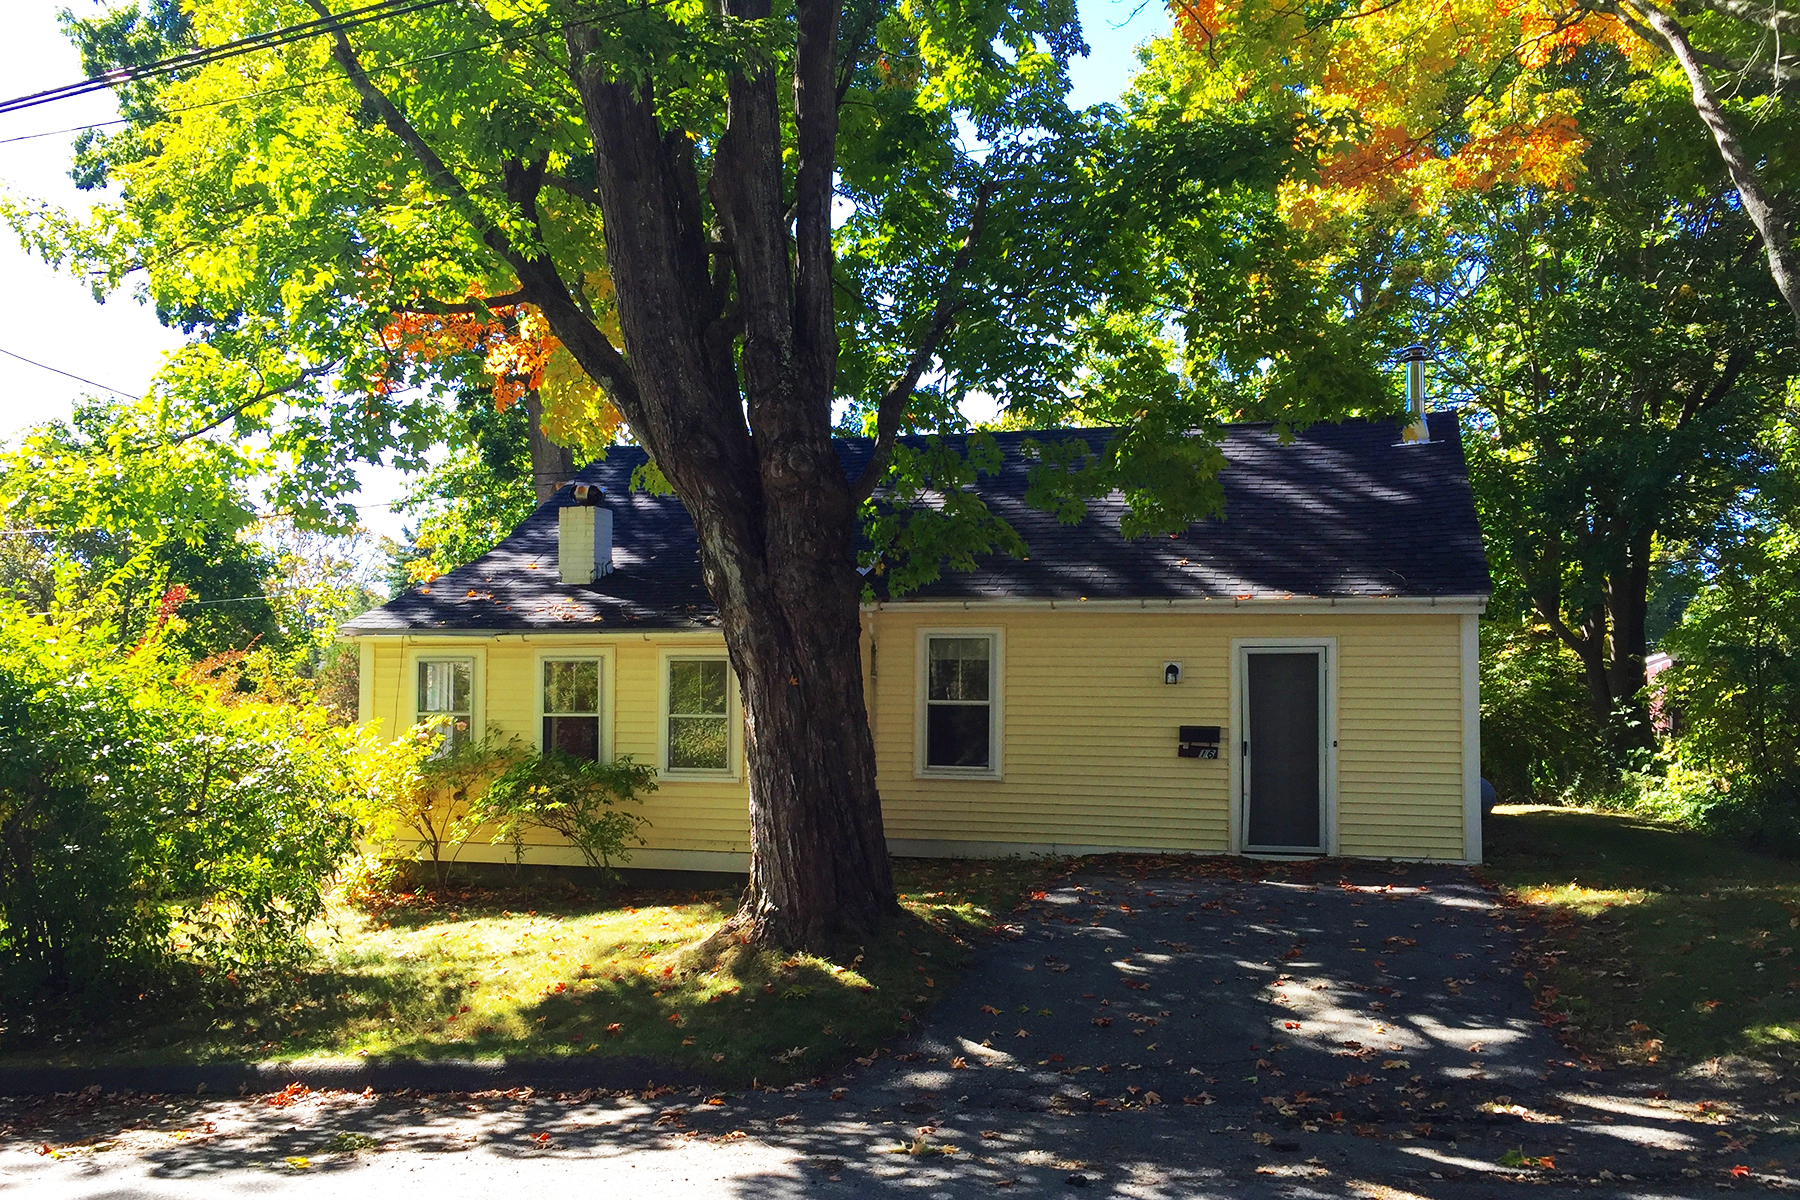 Single Family Home for Sale at Central Street 16 Central Street Camden, Maine, 04843 United States